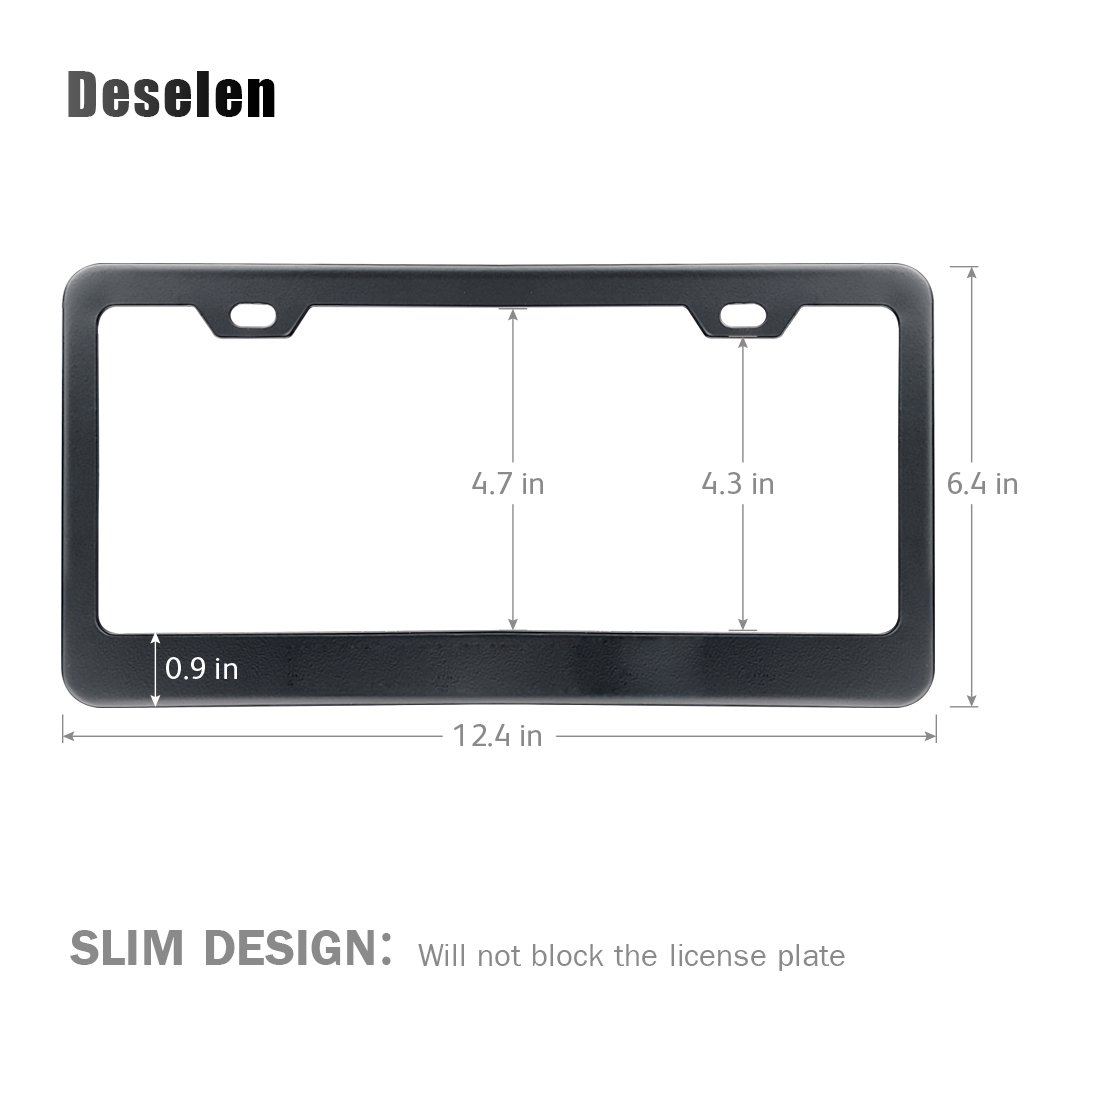 2 Pieces Deselen Silvery White//Chrome LP-BS01WP Stainless Steel License Plate Frame with Screw Caps Cover Set for Dodge